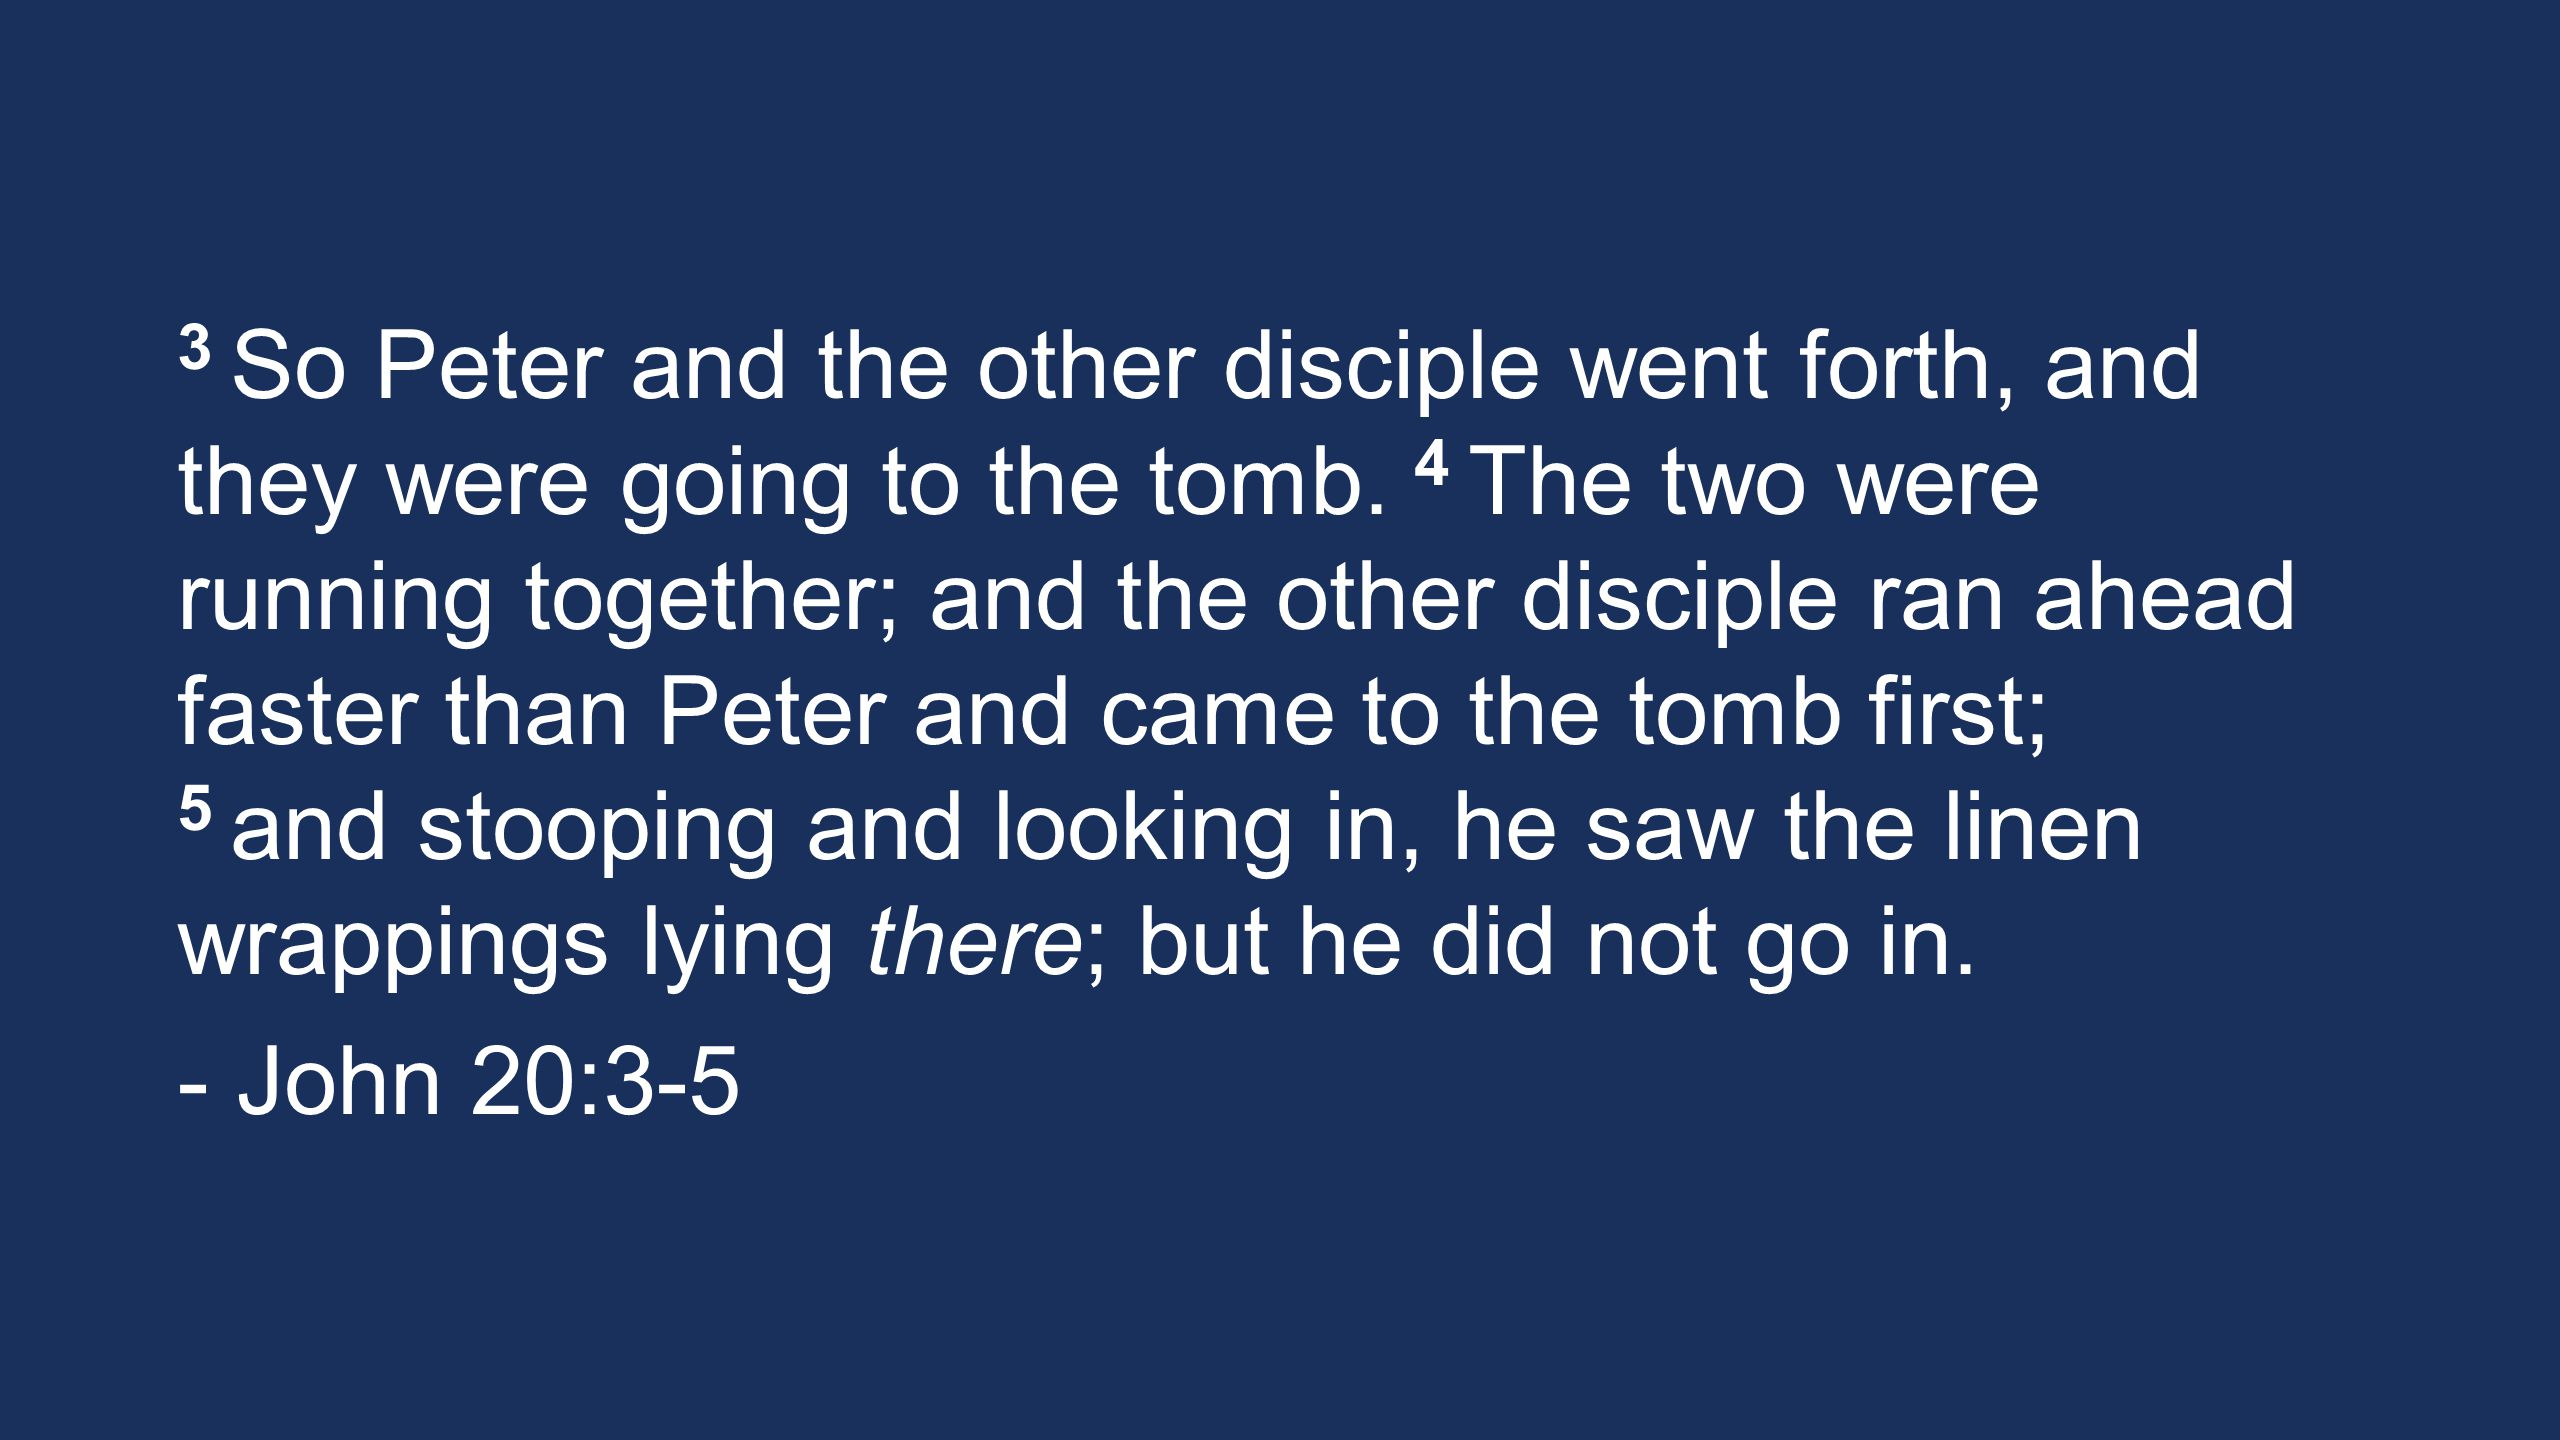 3 So Peter and the other disciple went forth, and they were going to the tomb. 4 The two were running together; and the other disciple ran ahead faste